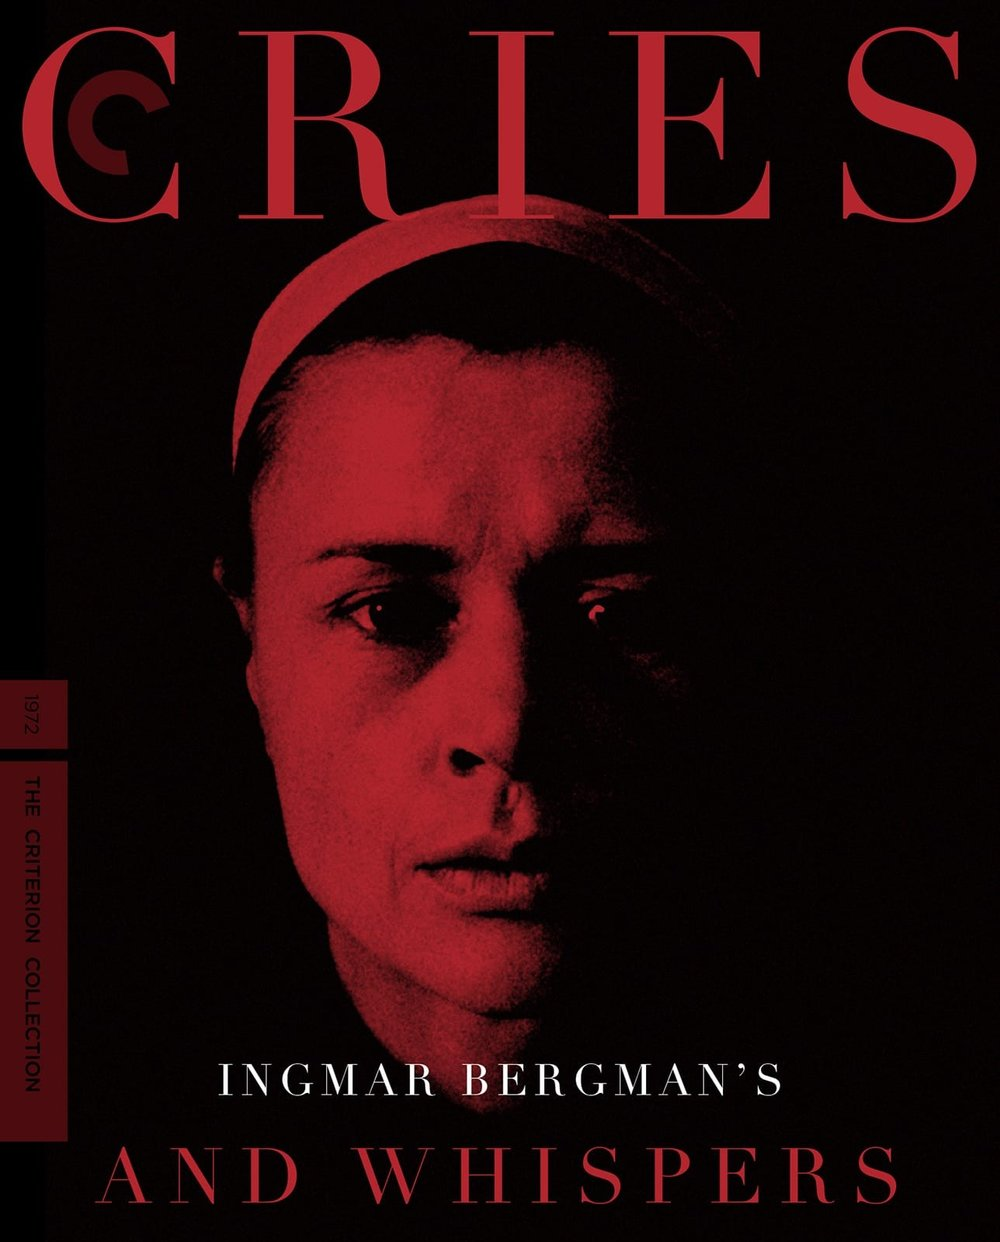 Cries & Whispers (1972) - Directed by: Ingmar BergmanStarring: Harriet Andersson, Liv Ullmann, Kari Sylwan, Ingrid ThulinRated: RRunning Time: 1 h 31 mTMM Score: 5 stars out of 5STRENGTHS: Writing, Directing, Acting, ThemesWEAKNESSES: -